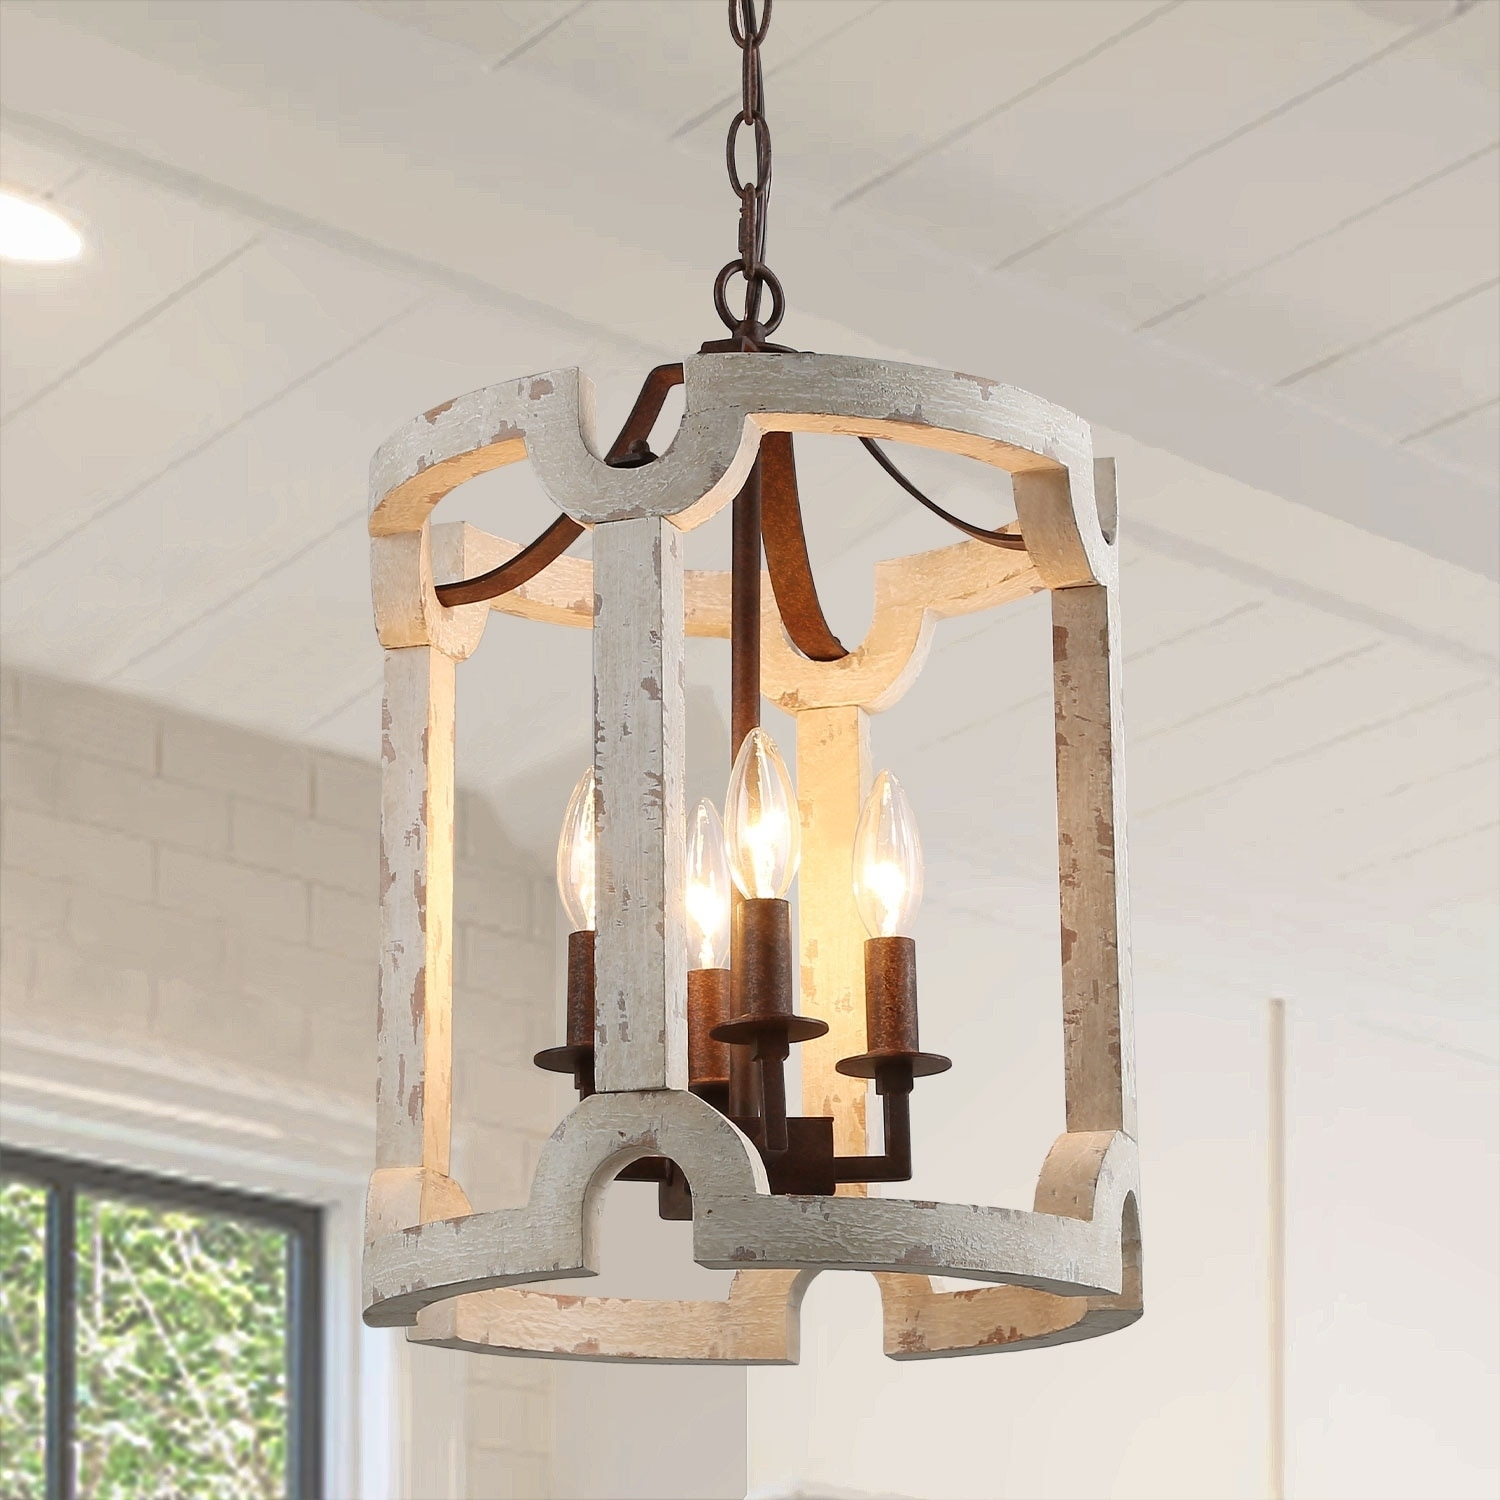 Mini Chandelier With 4 Lights Cylinder Farmhouse Pendant Lighting